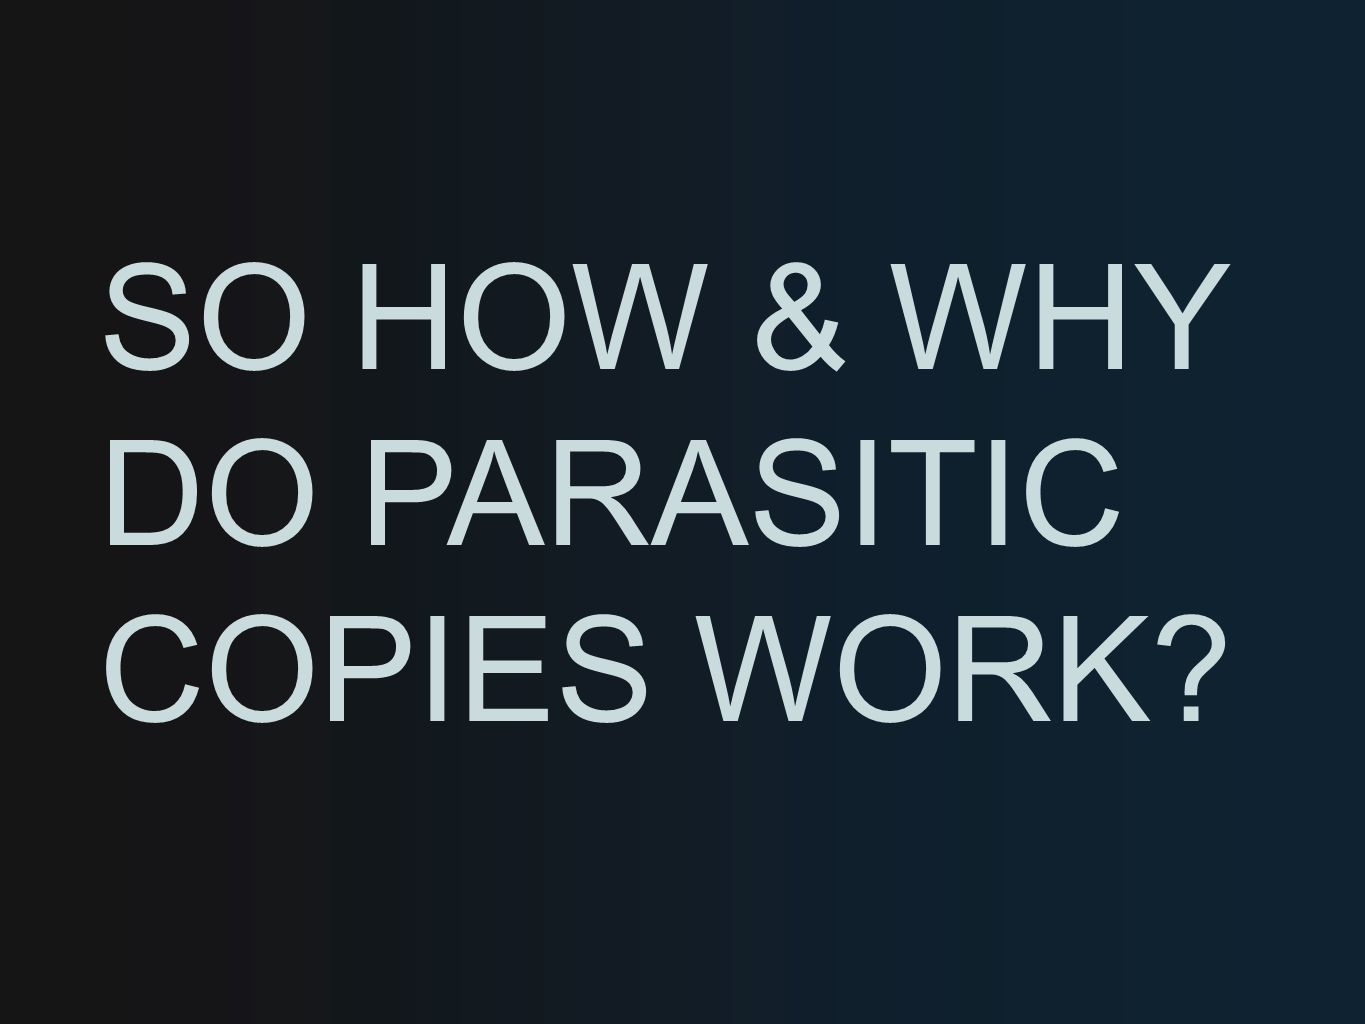 EXAMPLES OF PARASITIC COPIES: WHY IS PARASITIC COPYING AN ISSUE.